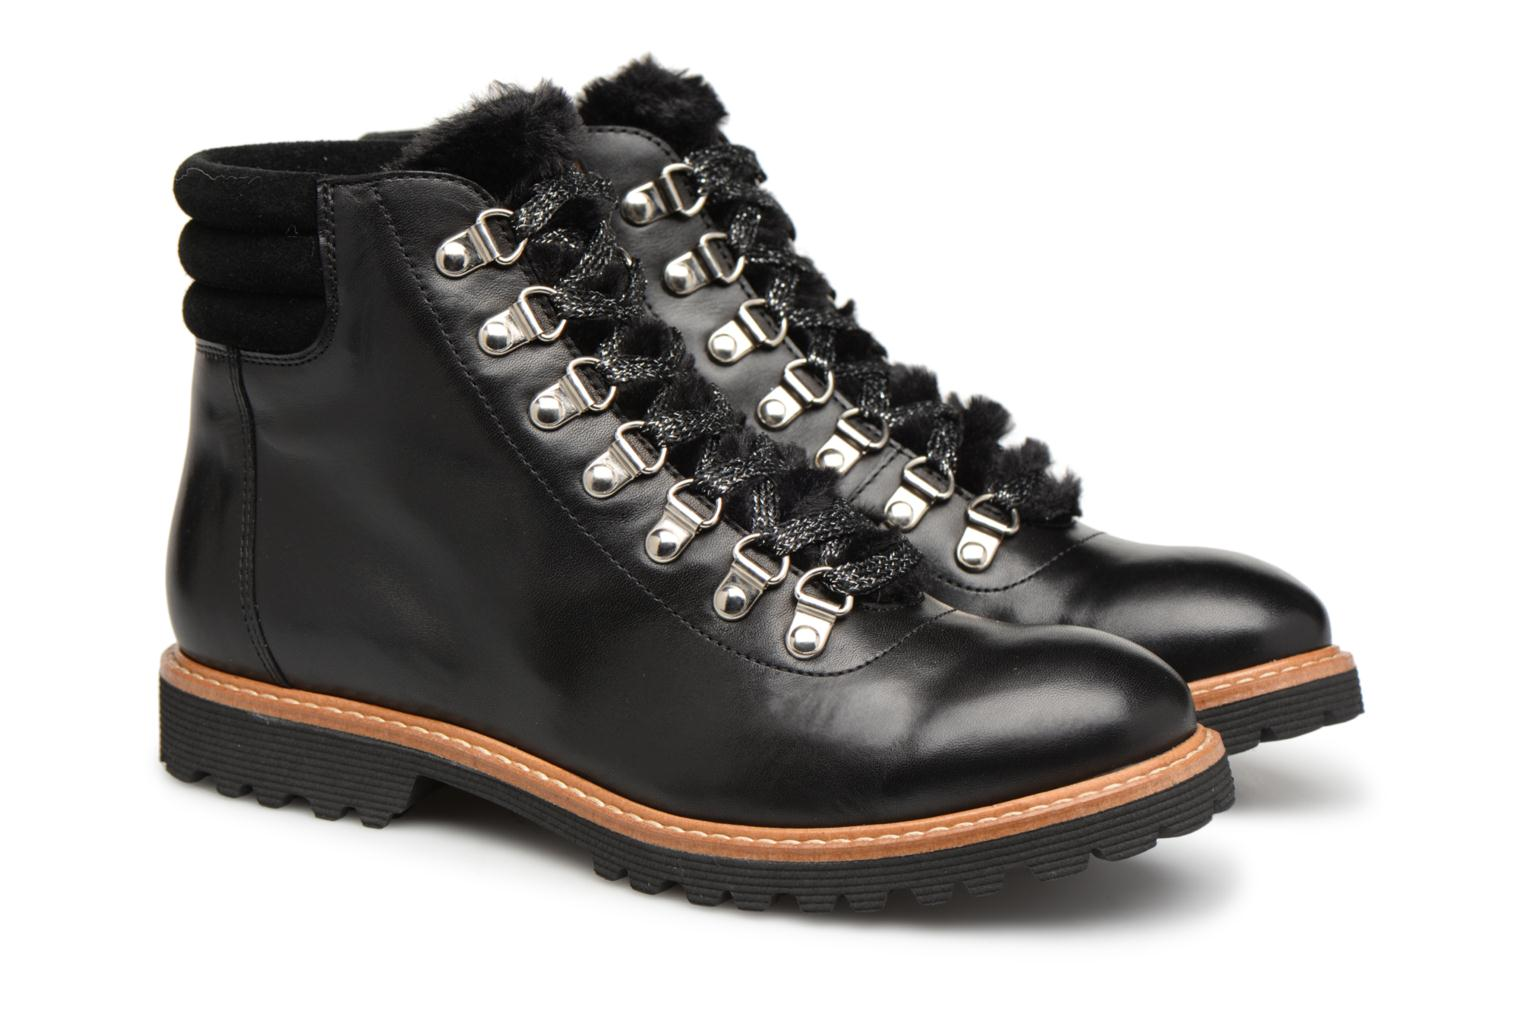 Toundra Bottines 2 SARENZA Plates Noir Cuir Made Lisse Girl by wpgqIE